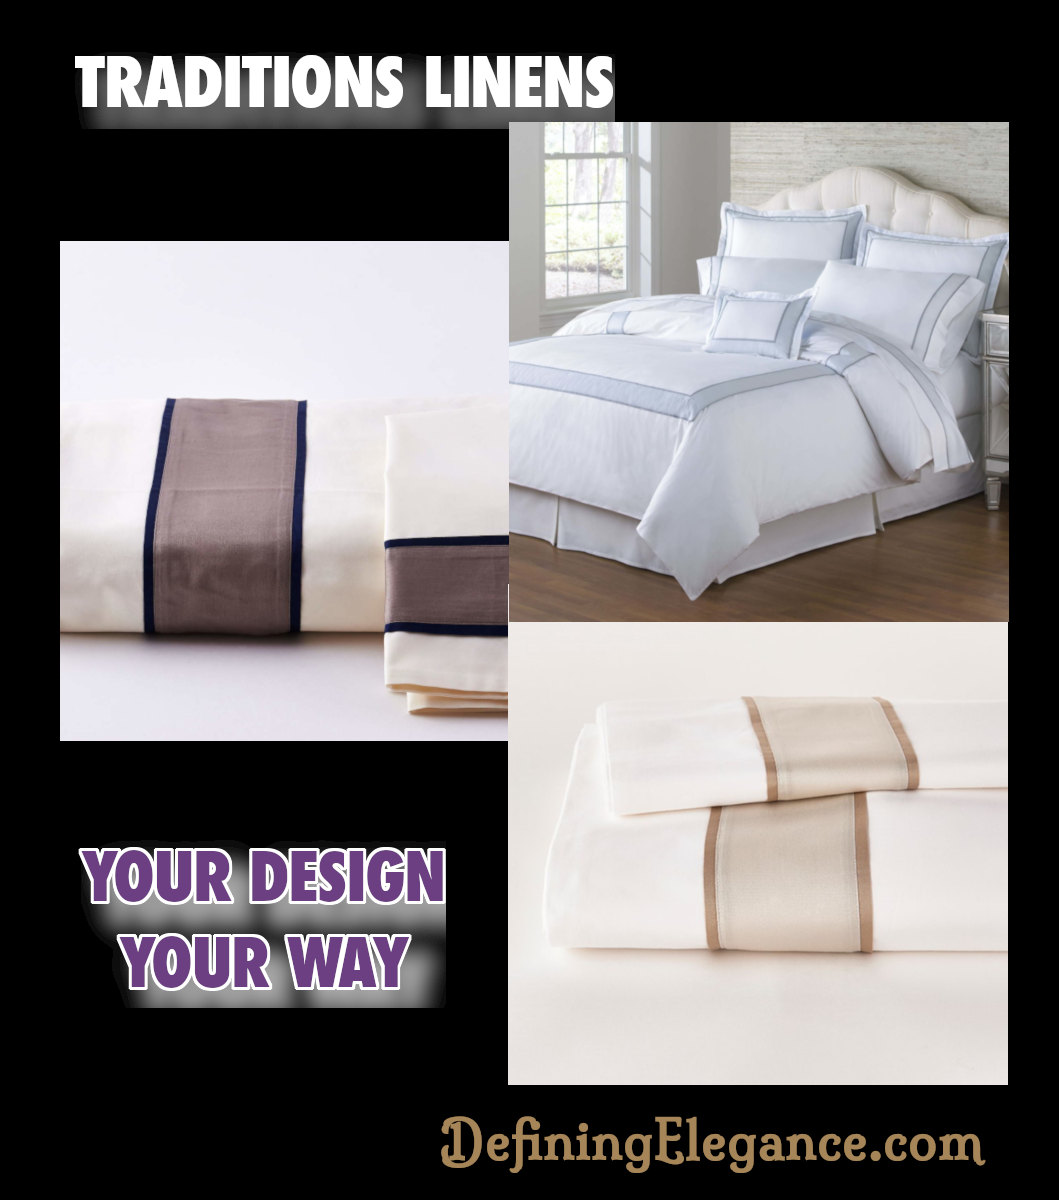 Traditions Linens - Designing Bedding Your Way